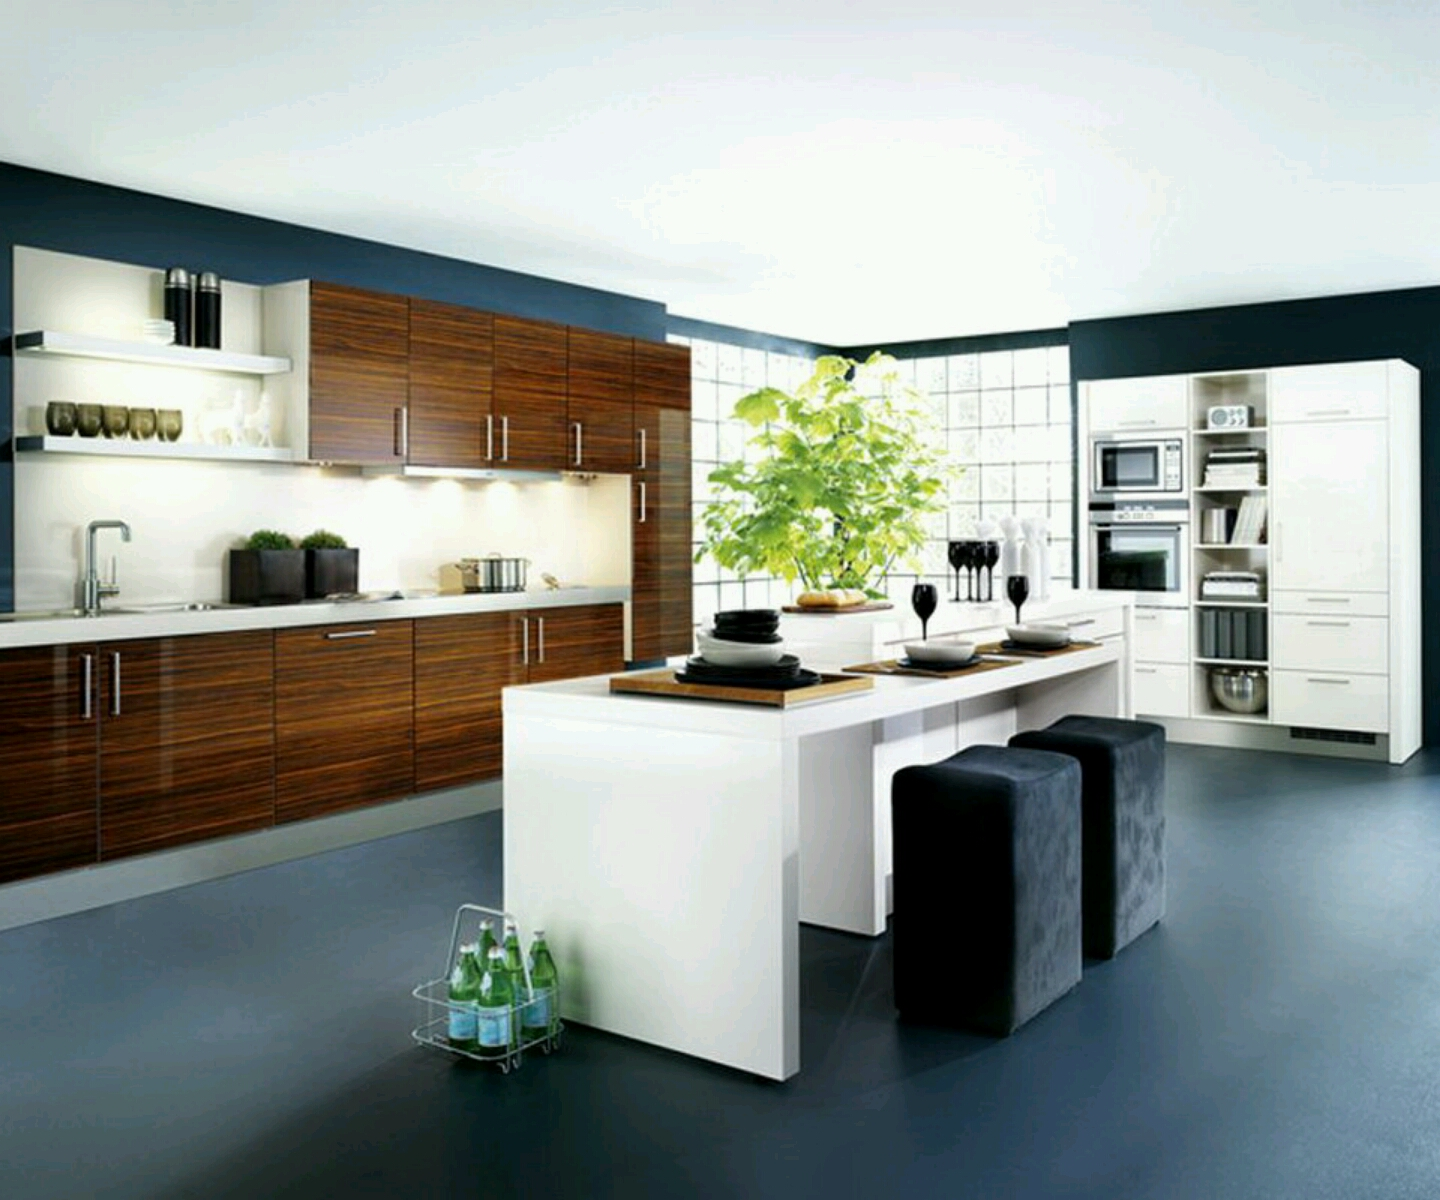 New home designs latest kitchen cabinets designs modern for Home kitchen design images